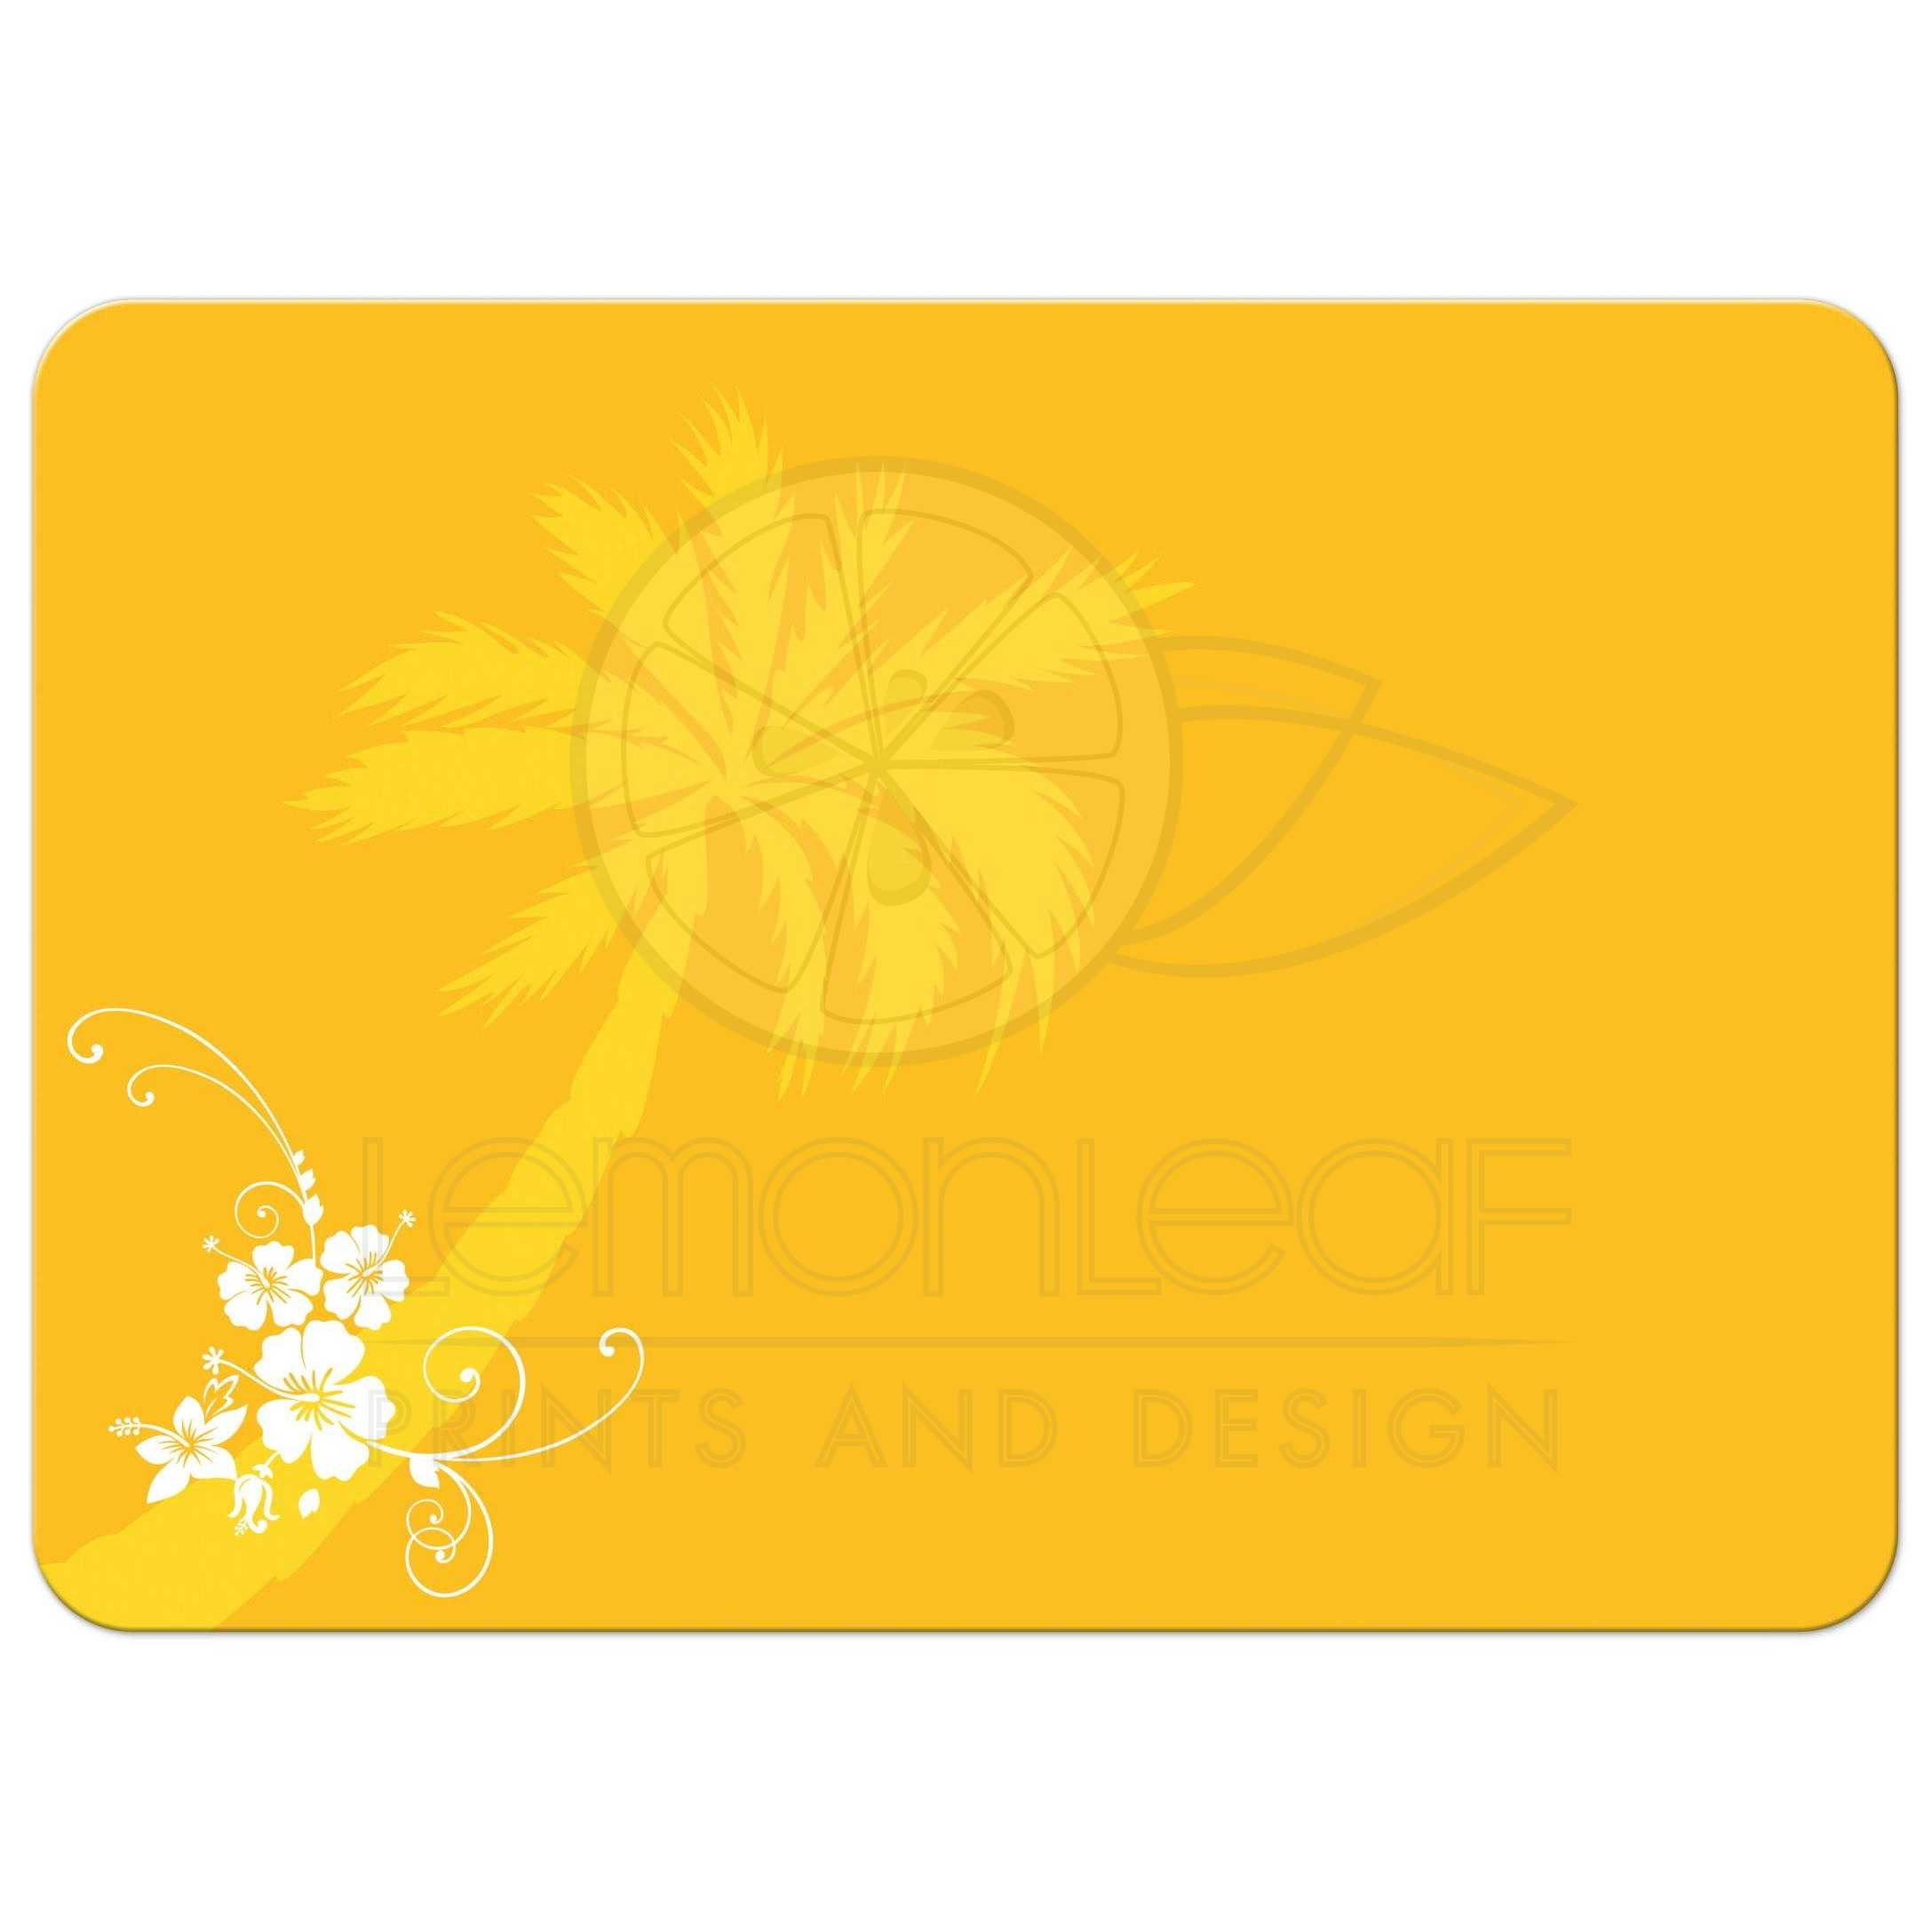 ... Best Yellow, Blue And White Tropical Beach Theme Wedding Invitations  With Scallop Sea Shells,